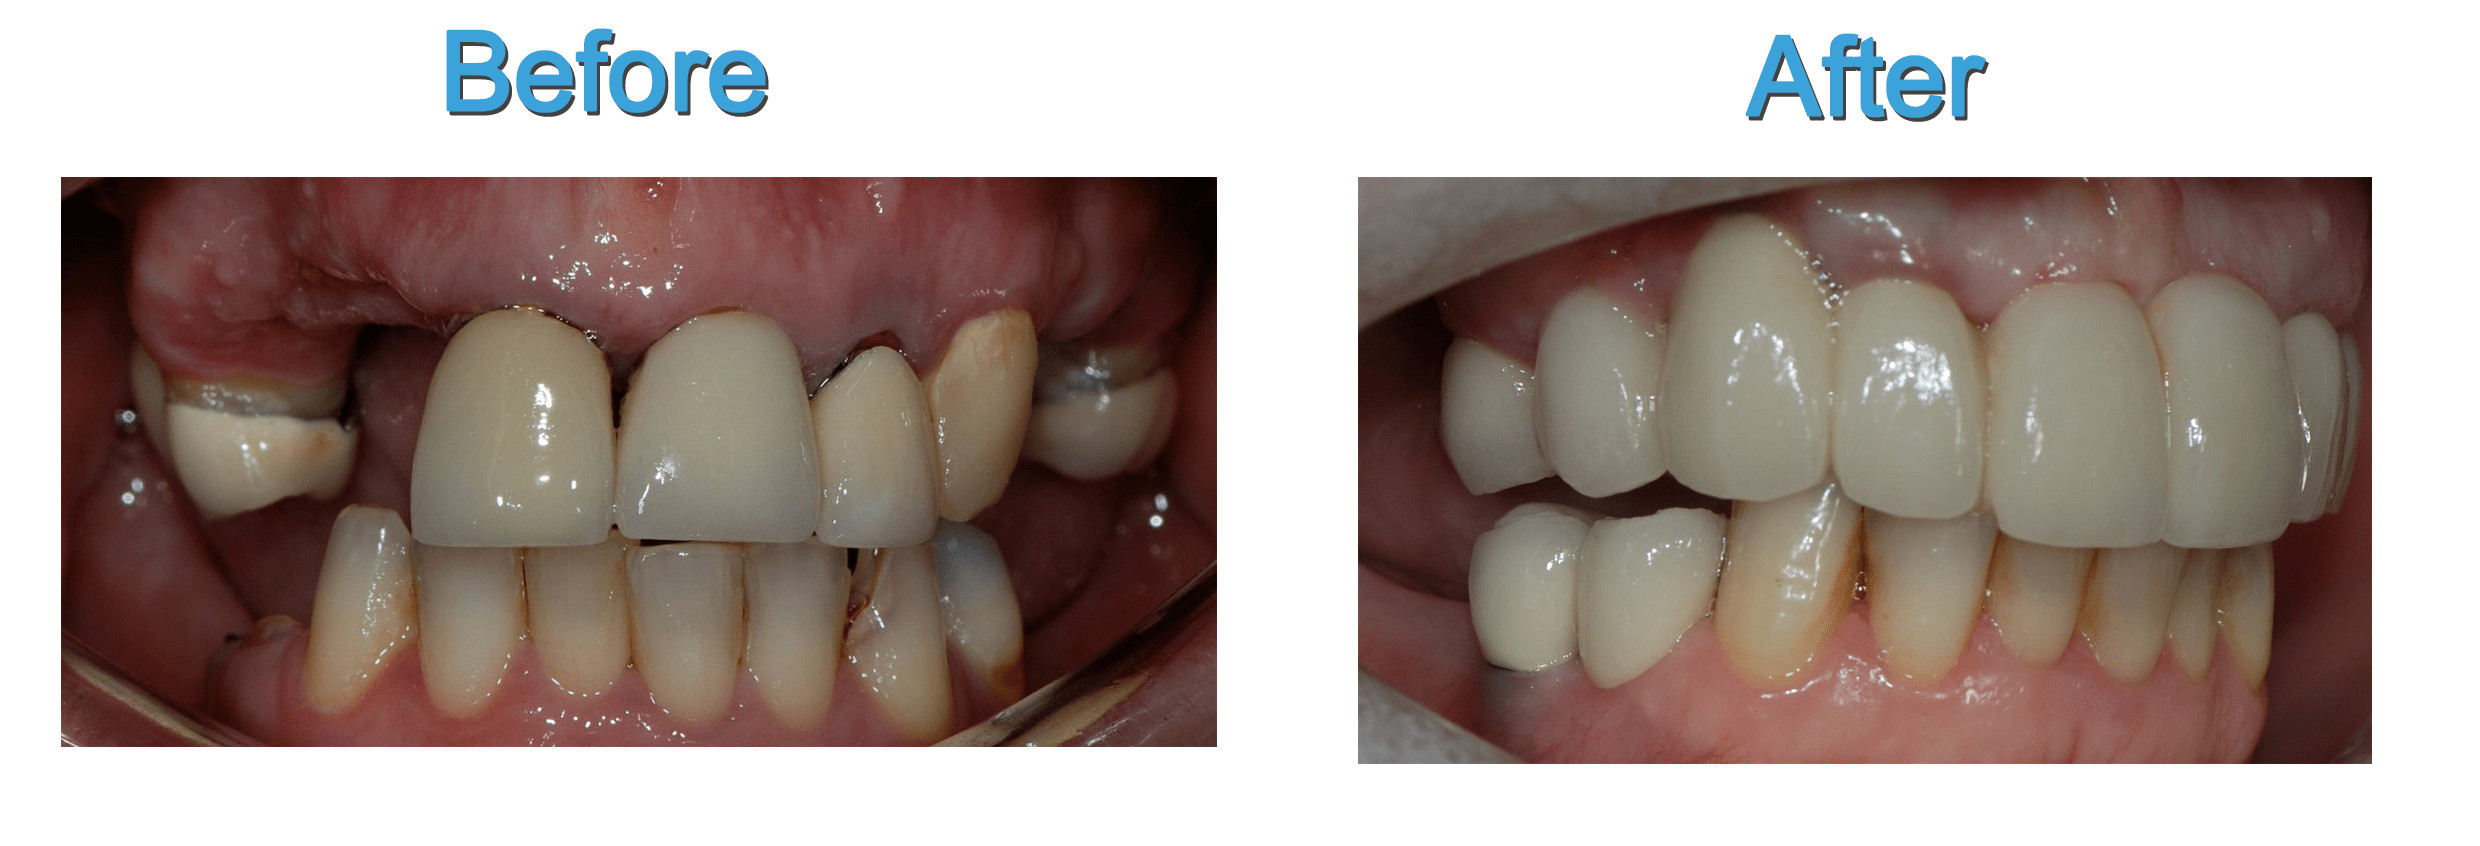 Visit Dental Clinic For Teeth Whitening Or Dental Implants Dental Implants London Dental Implants Cost